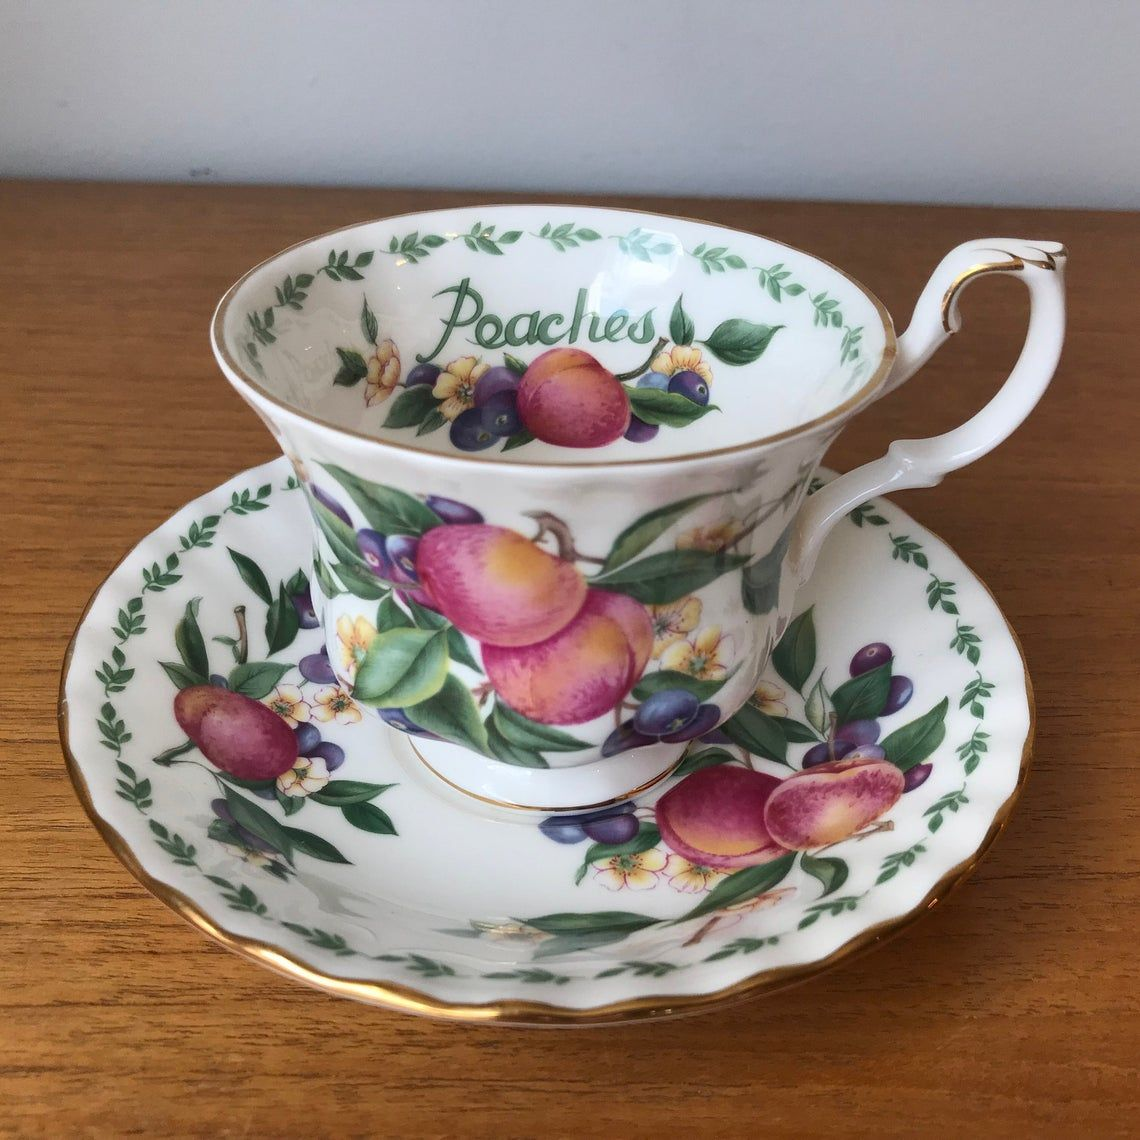 Royal Albert Peaches Vintage Teacup and Saucer, Covent Garden Fruit Series, Peach Flowers Tea Cup, and Saucer, Bone China